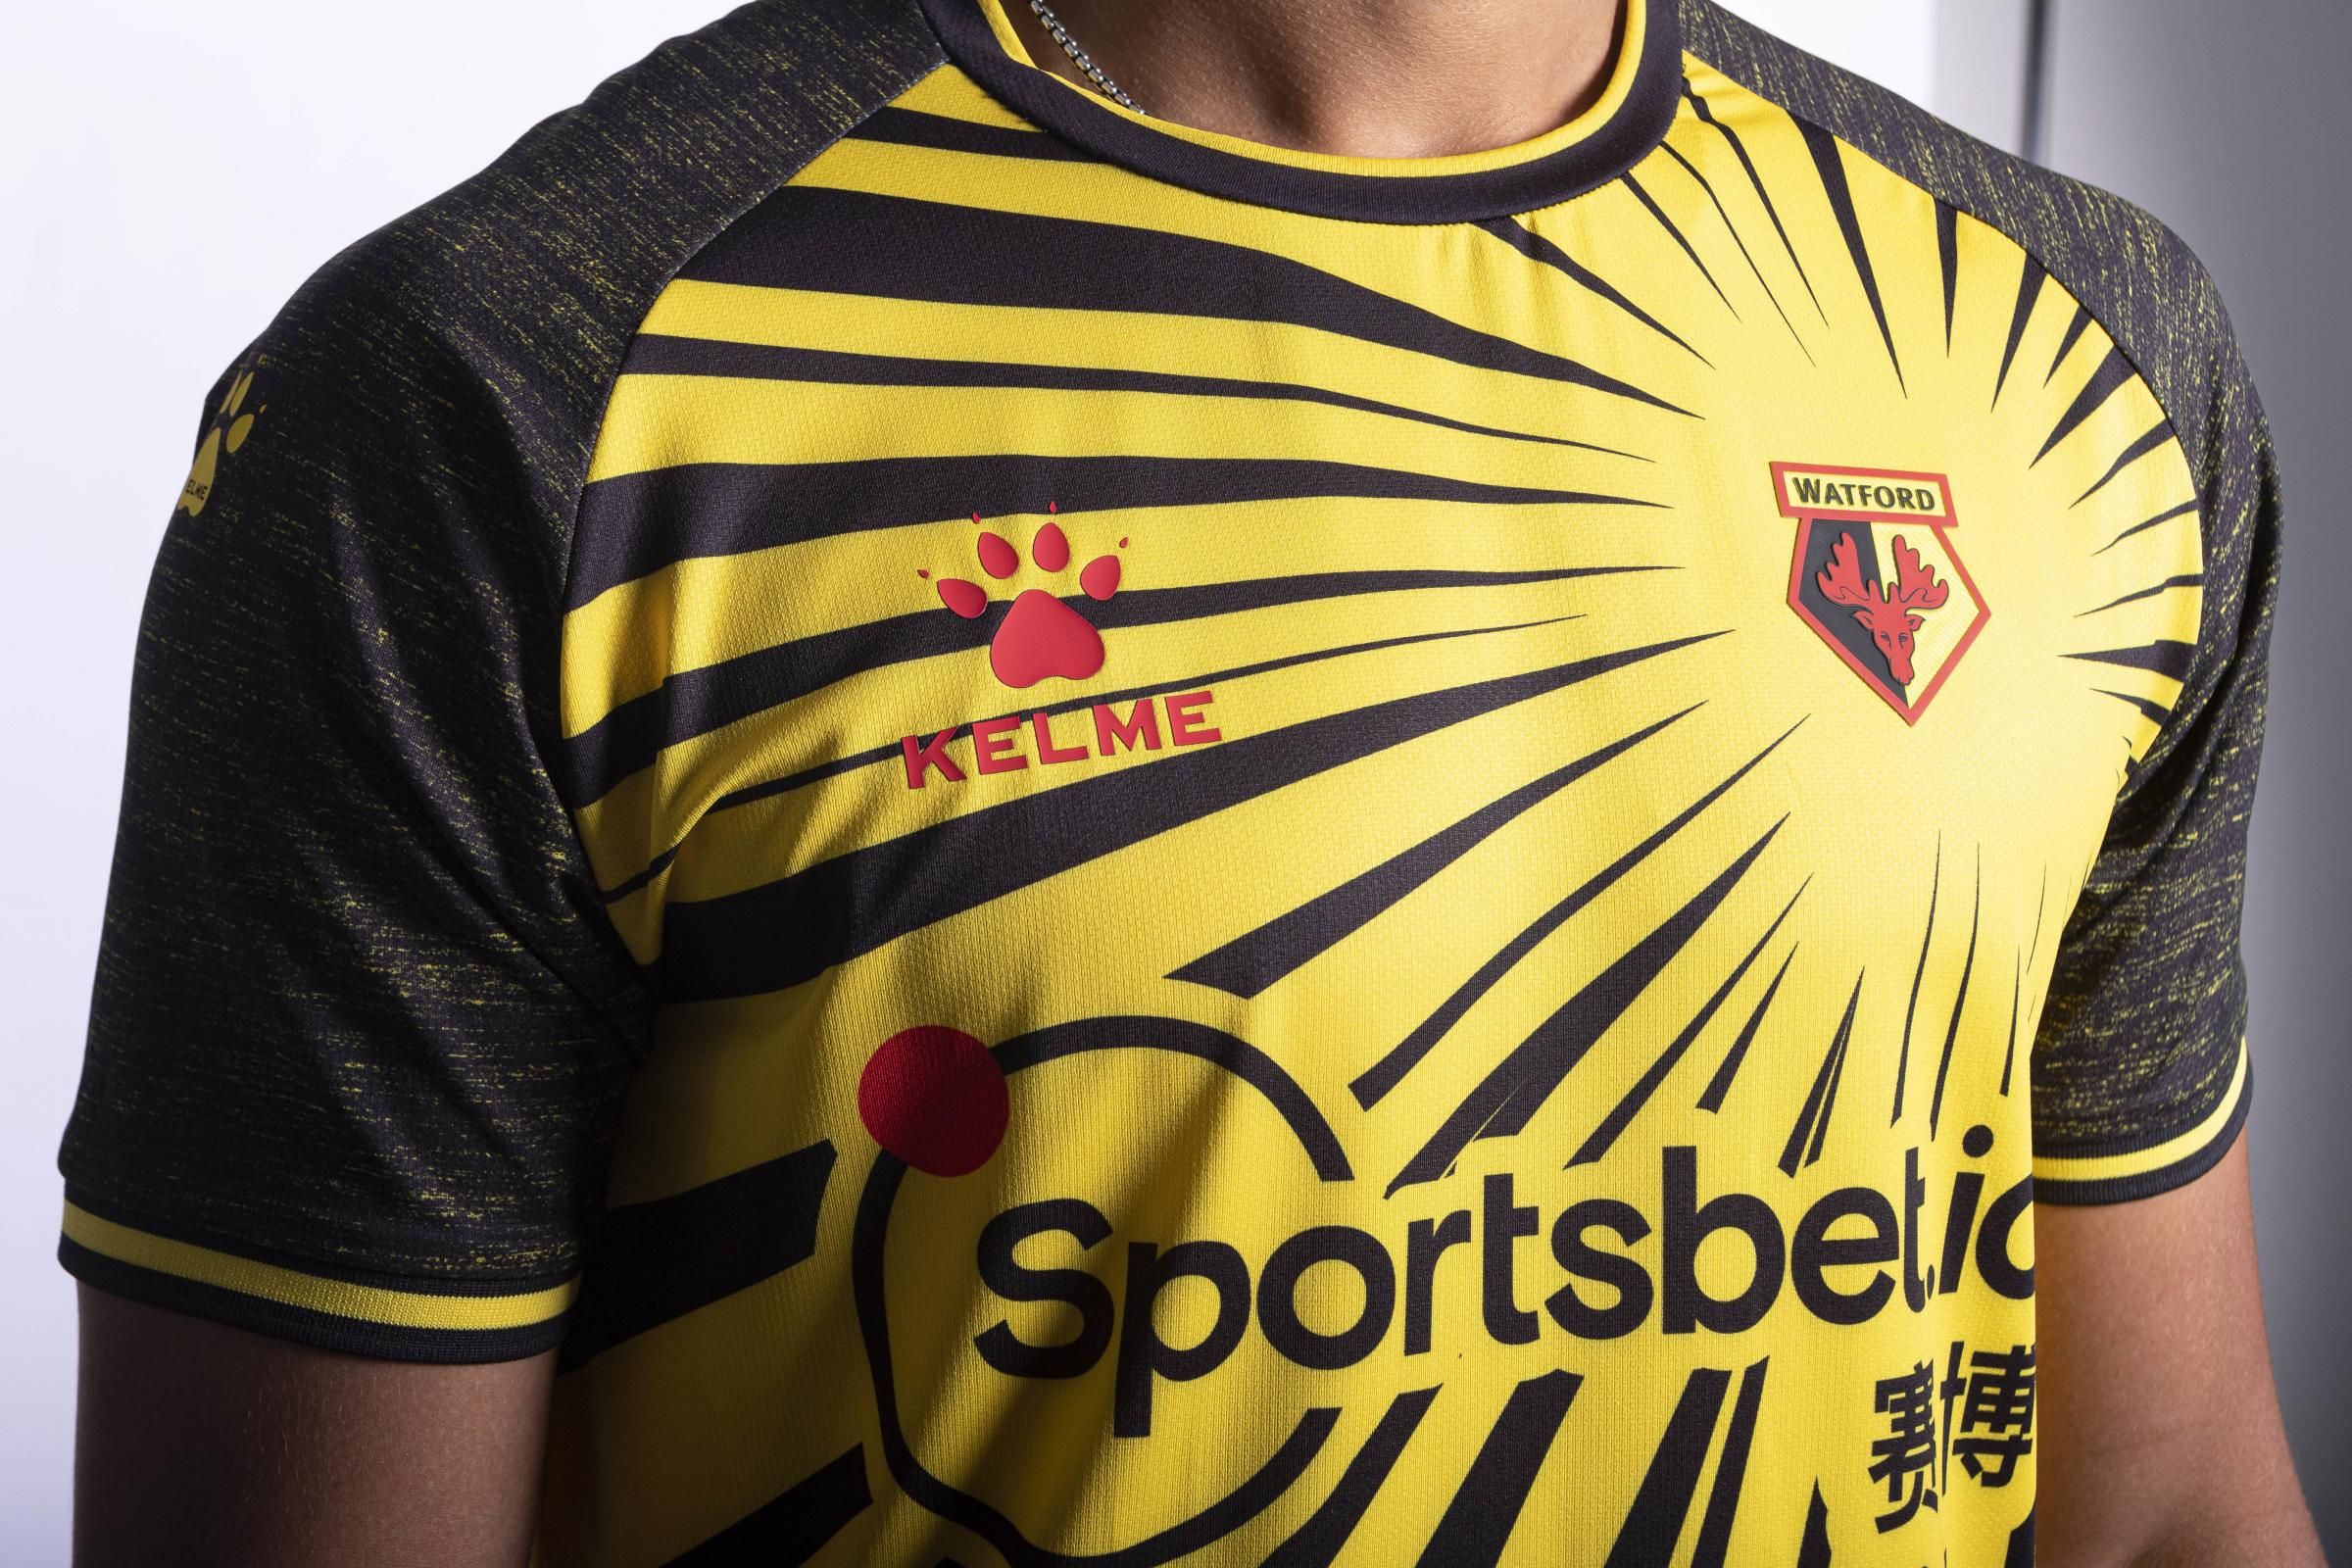 New Kelme Kit Divides Opinion Between Watford Fans Watford Observer